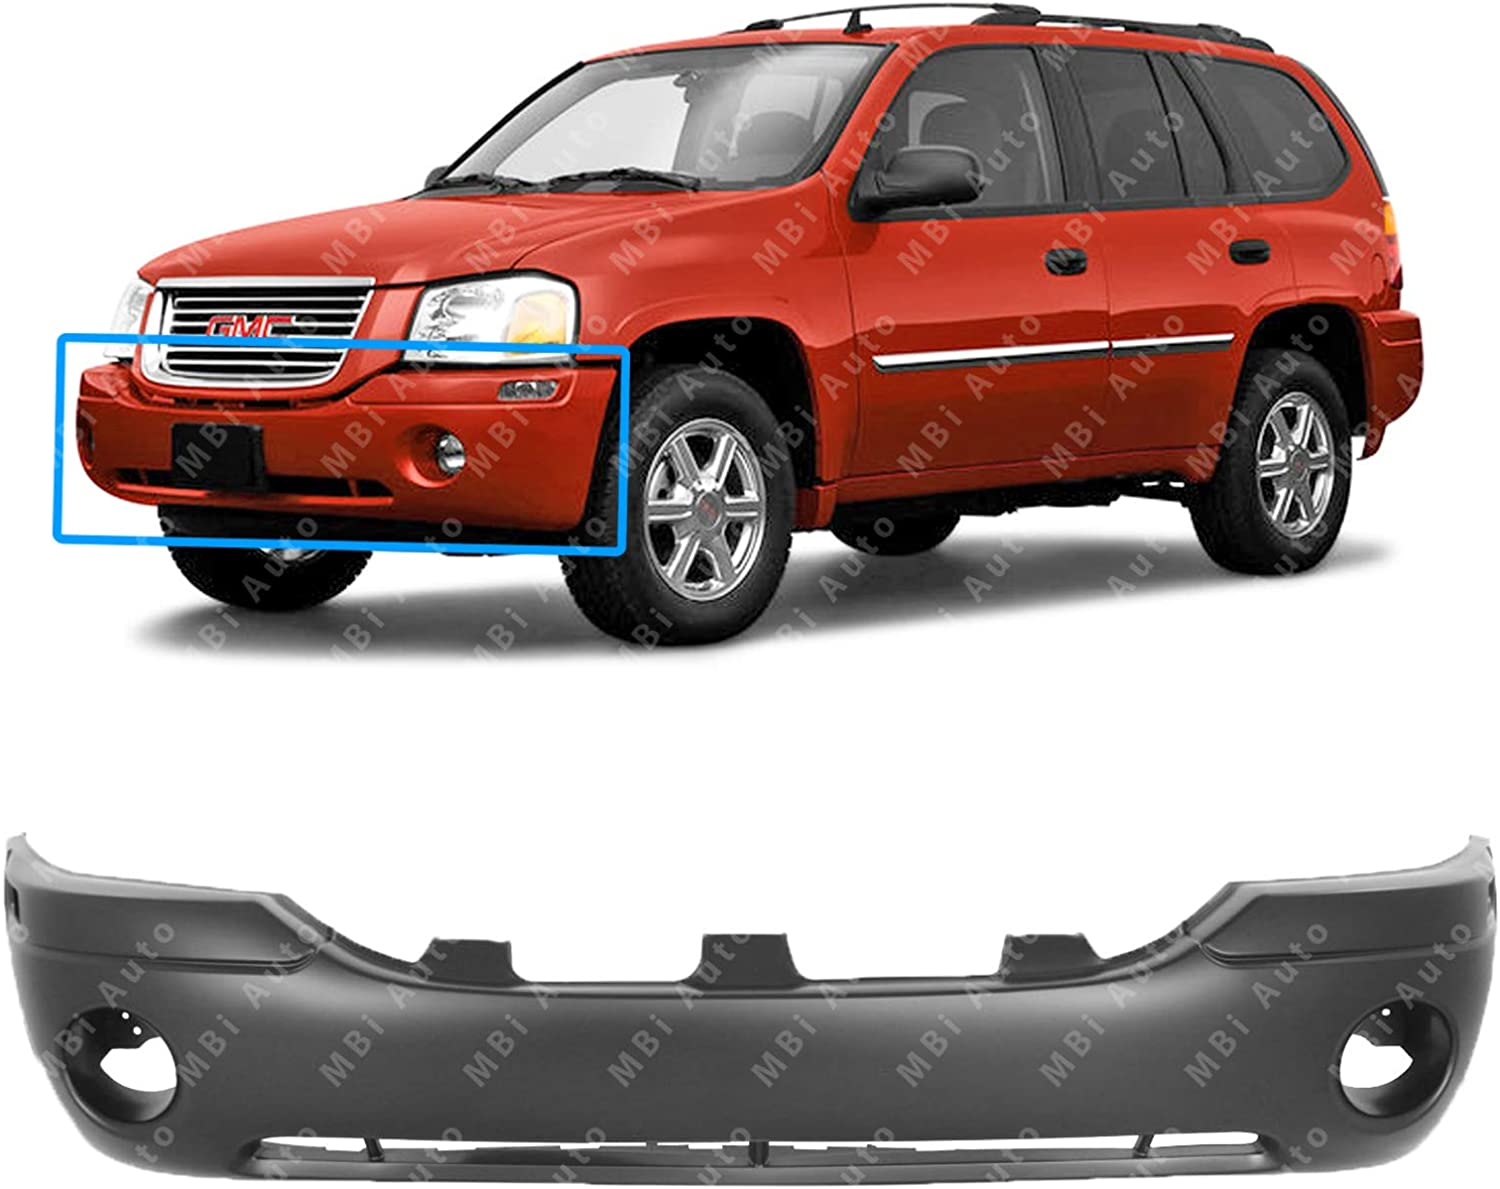 NEW GM1000641 BUMPER COVER FRONT FOR GMC ENVOY 2002 2009